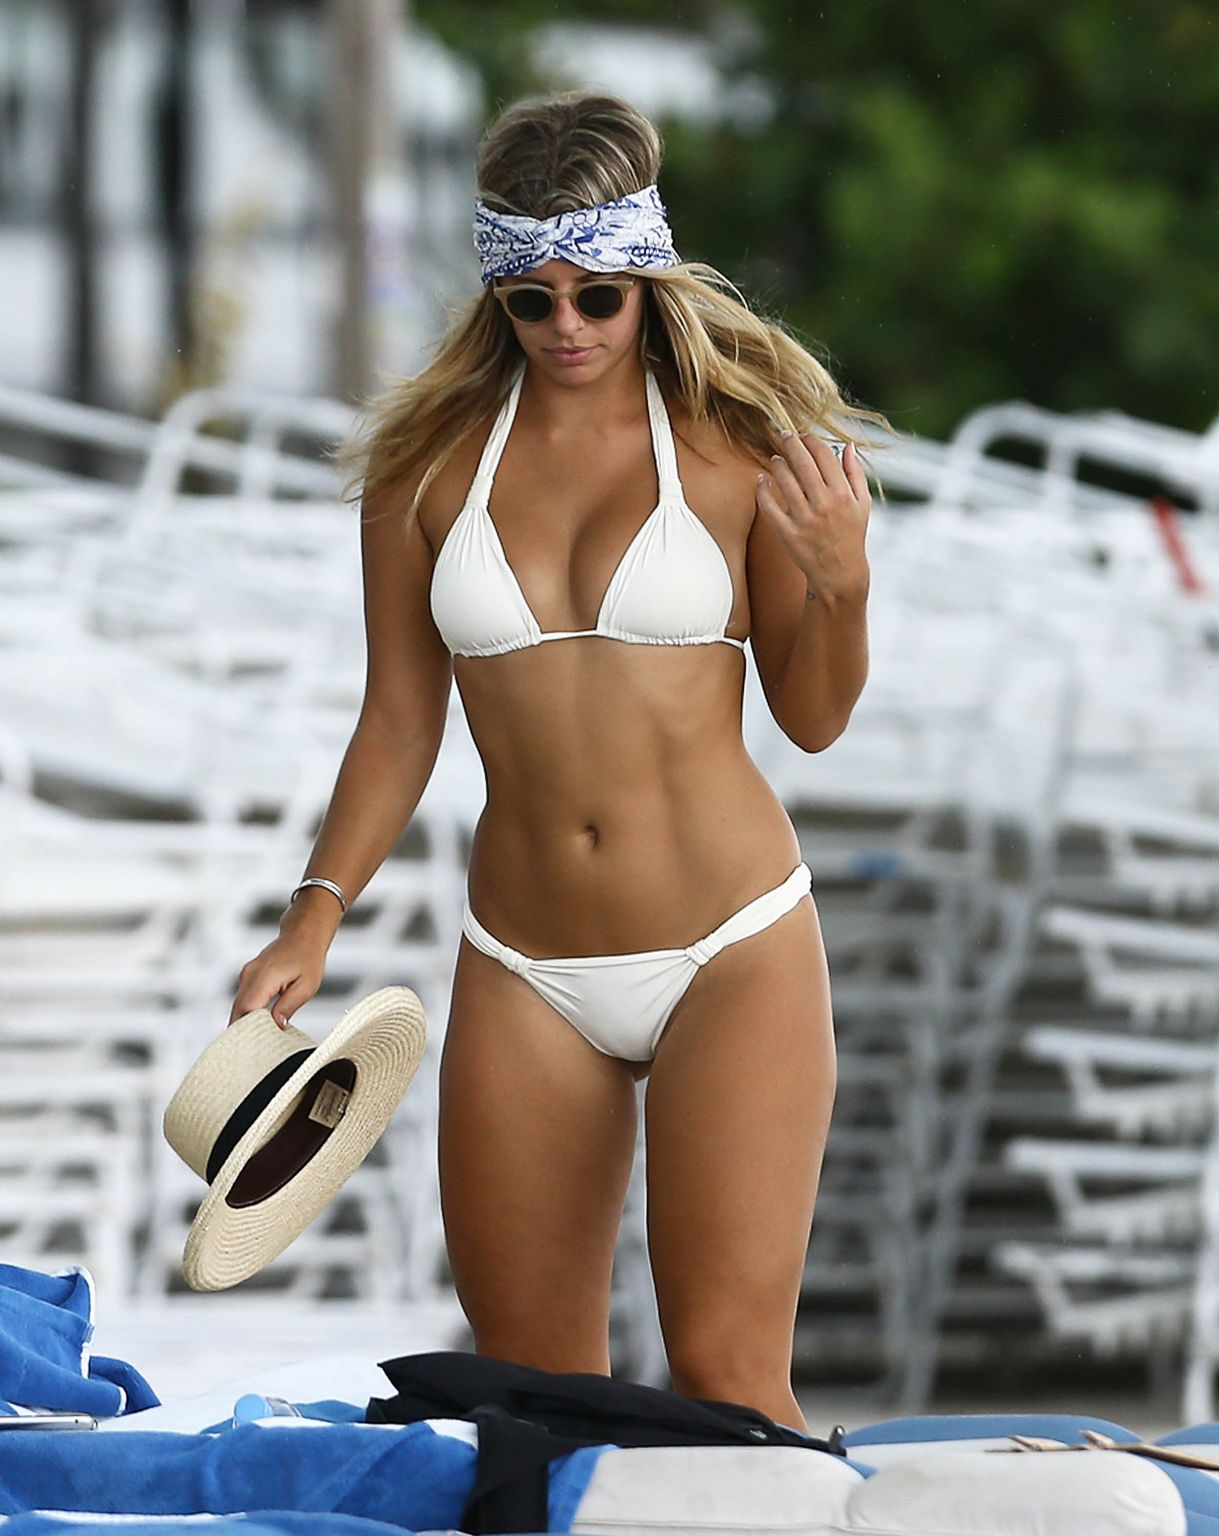 Natasha Oakley in White Bikini on Miami Beach